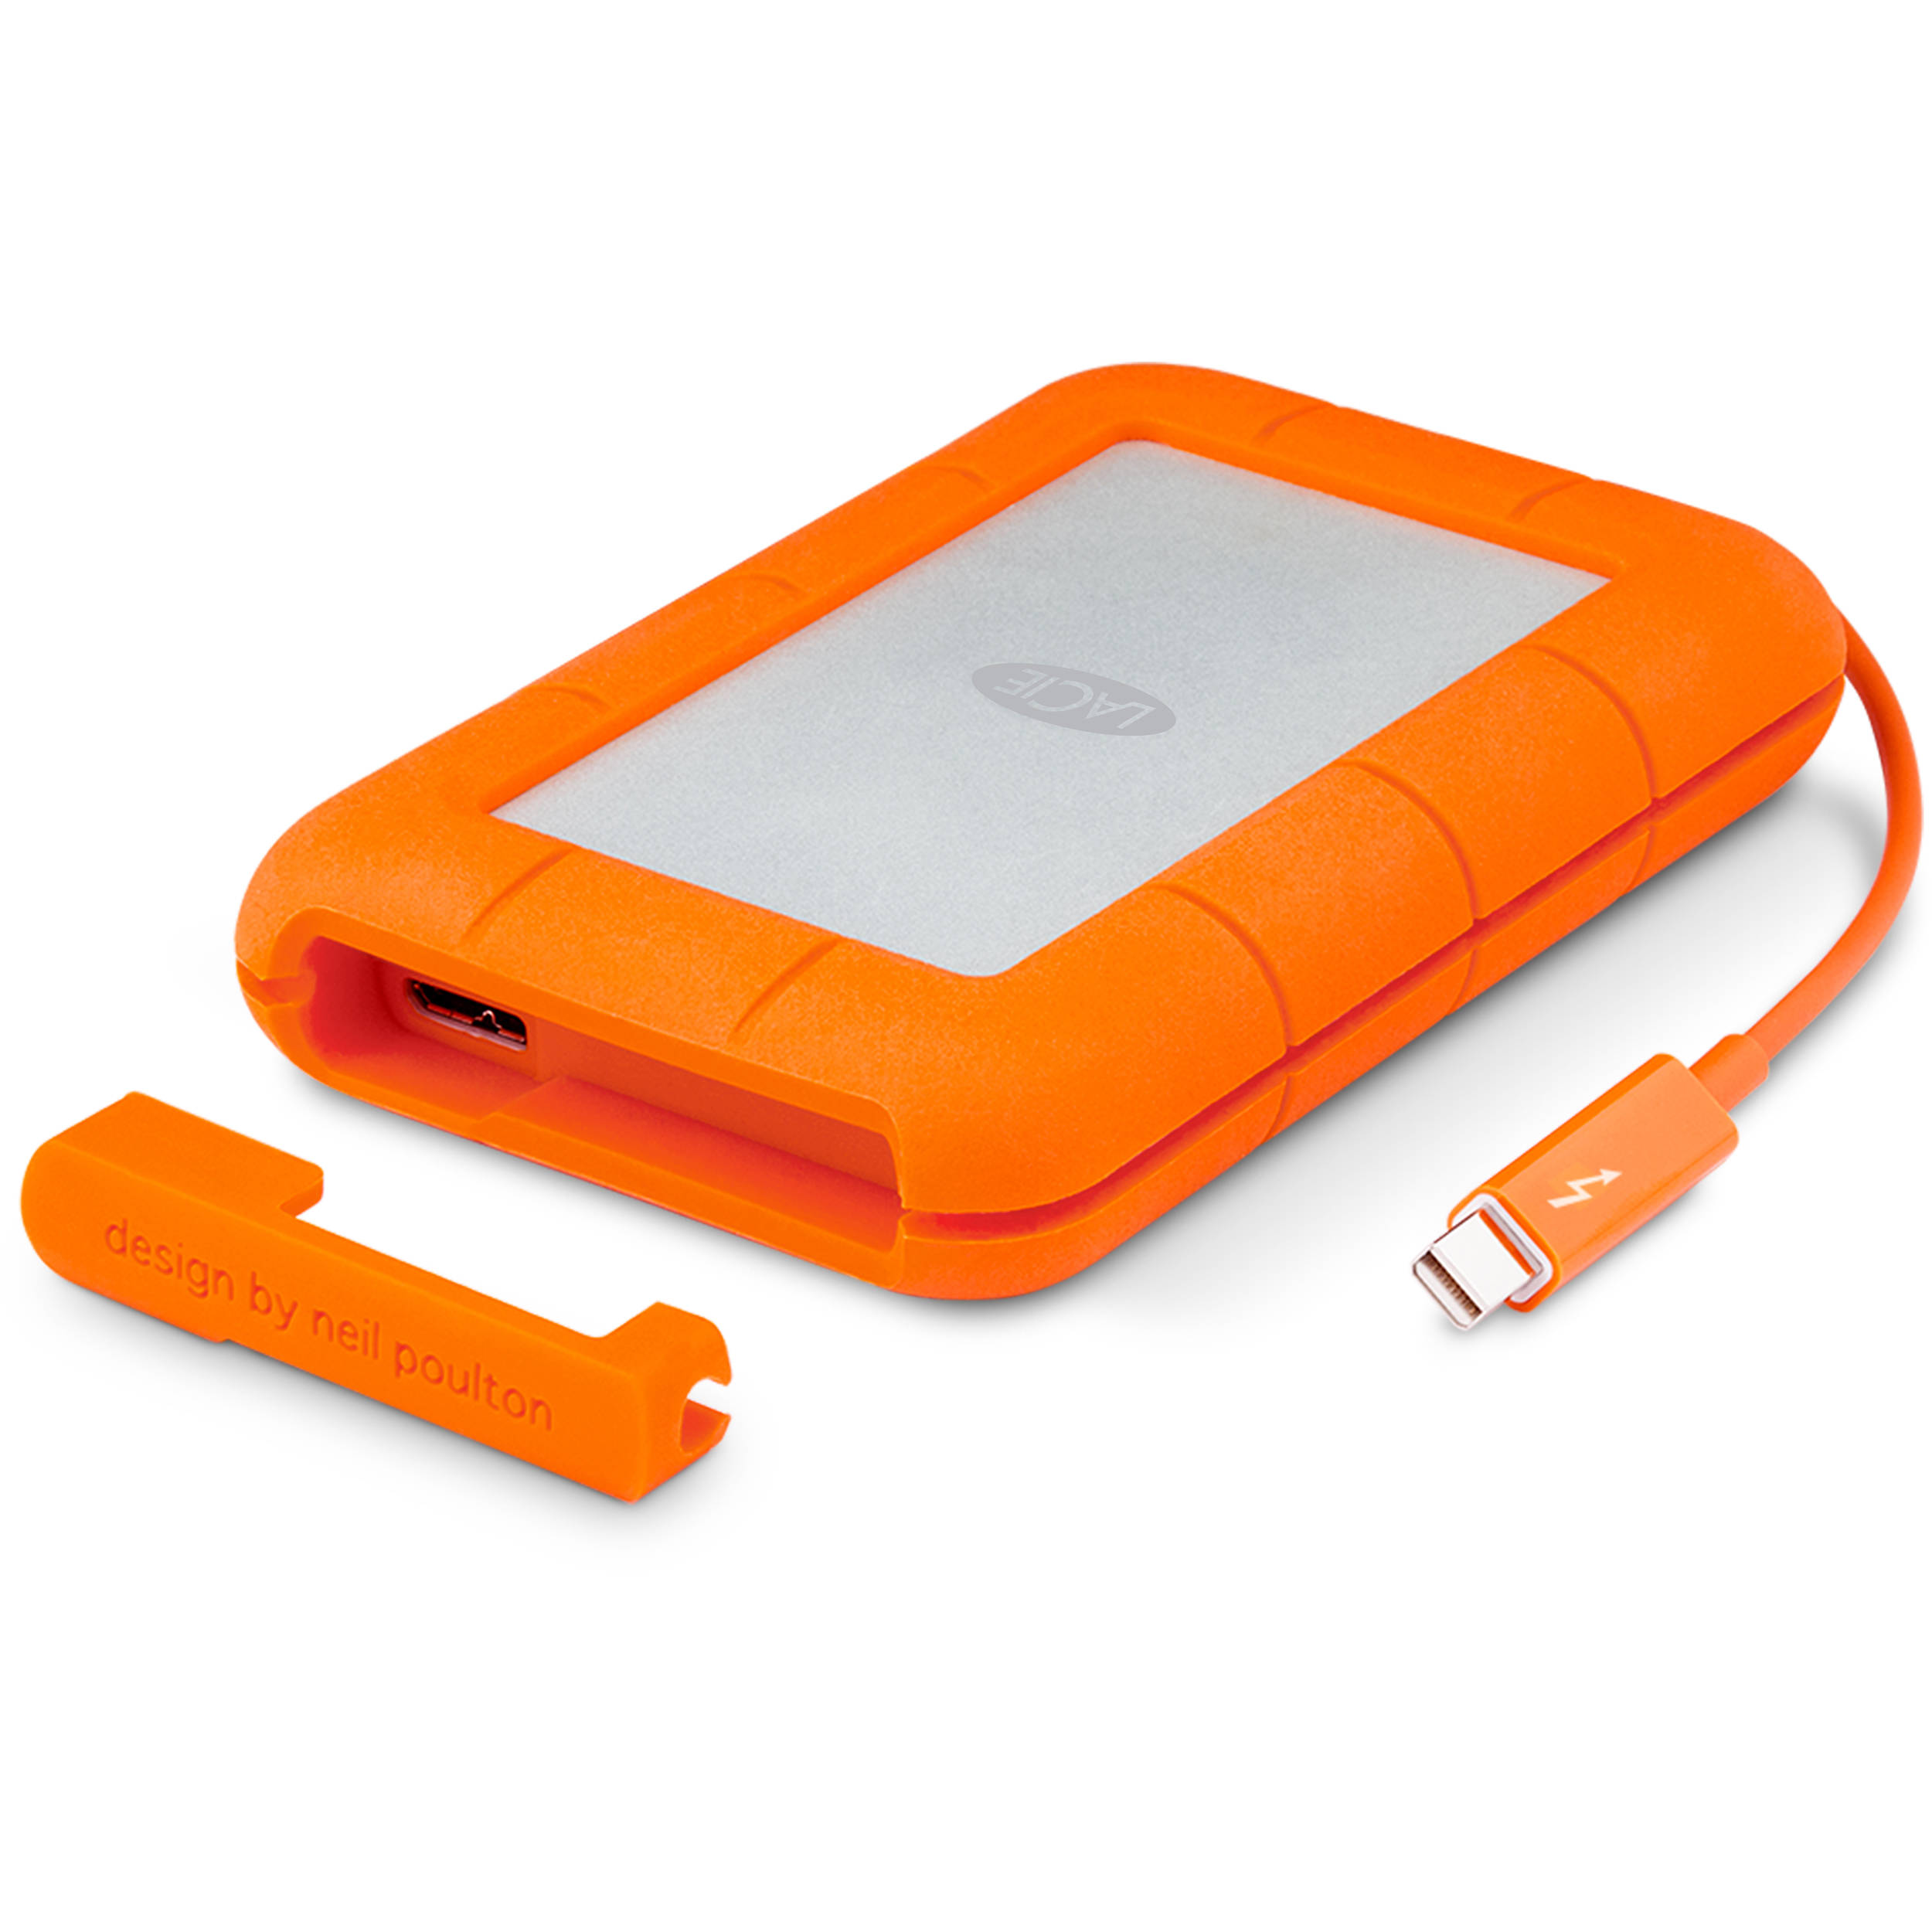 Lacie 2tb Rugged Mobile Hard Drive Stev2000400 B Amp H Photo Video